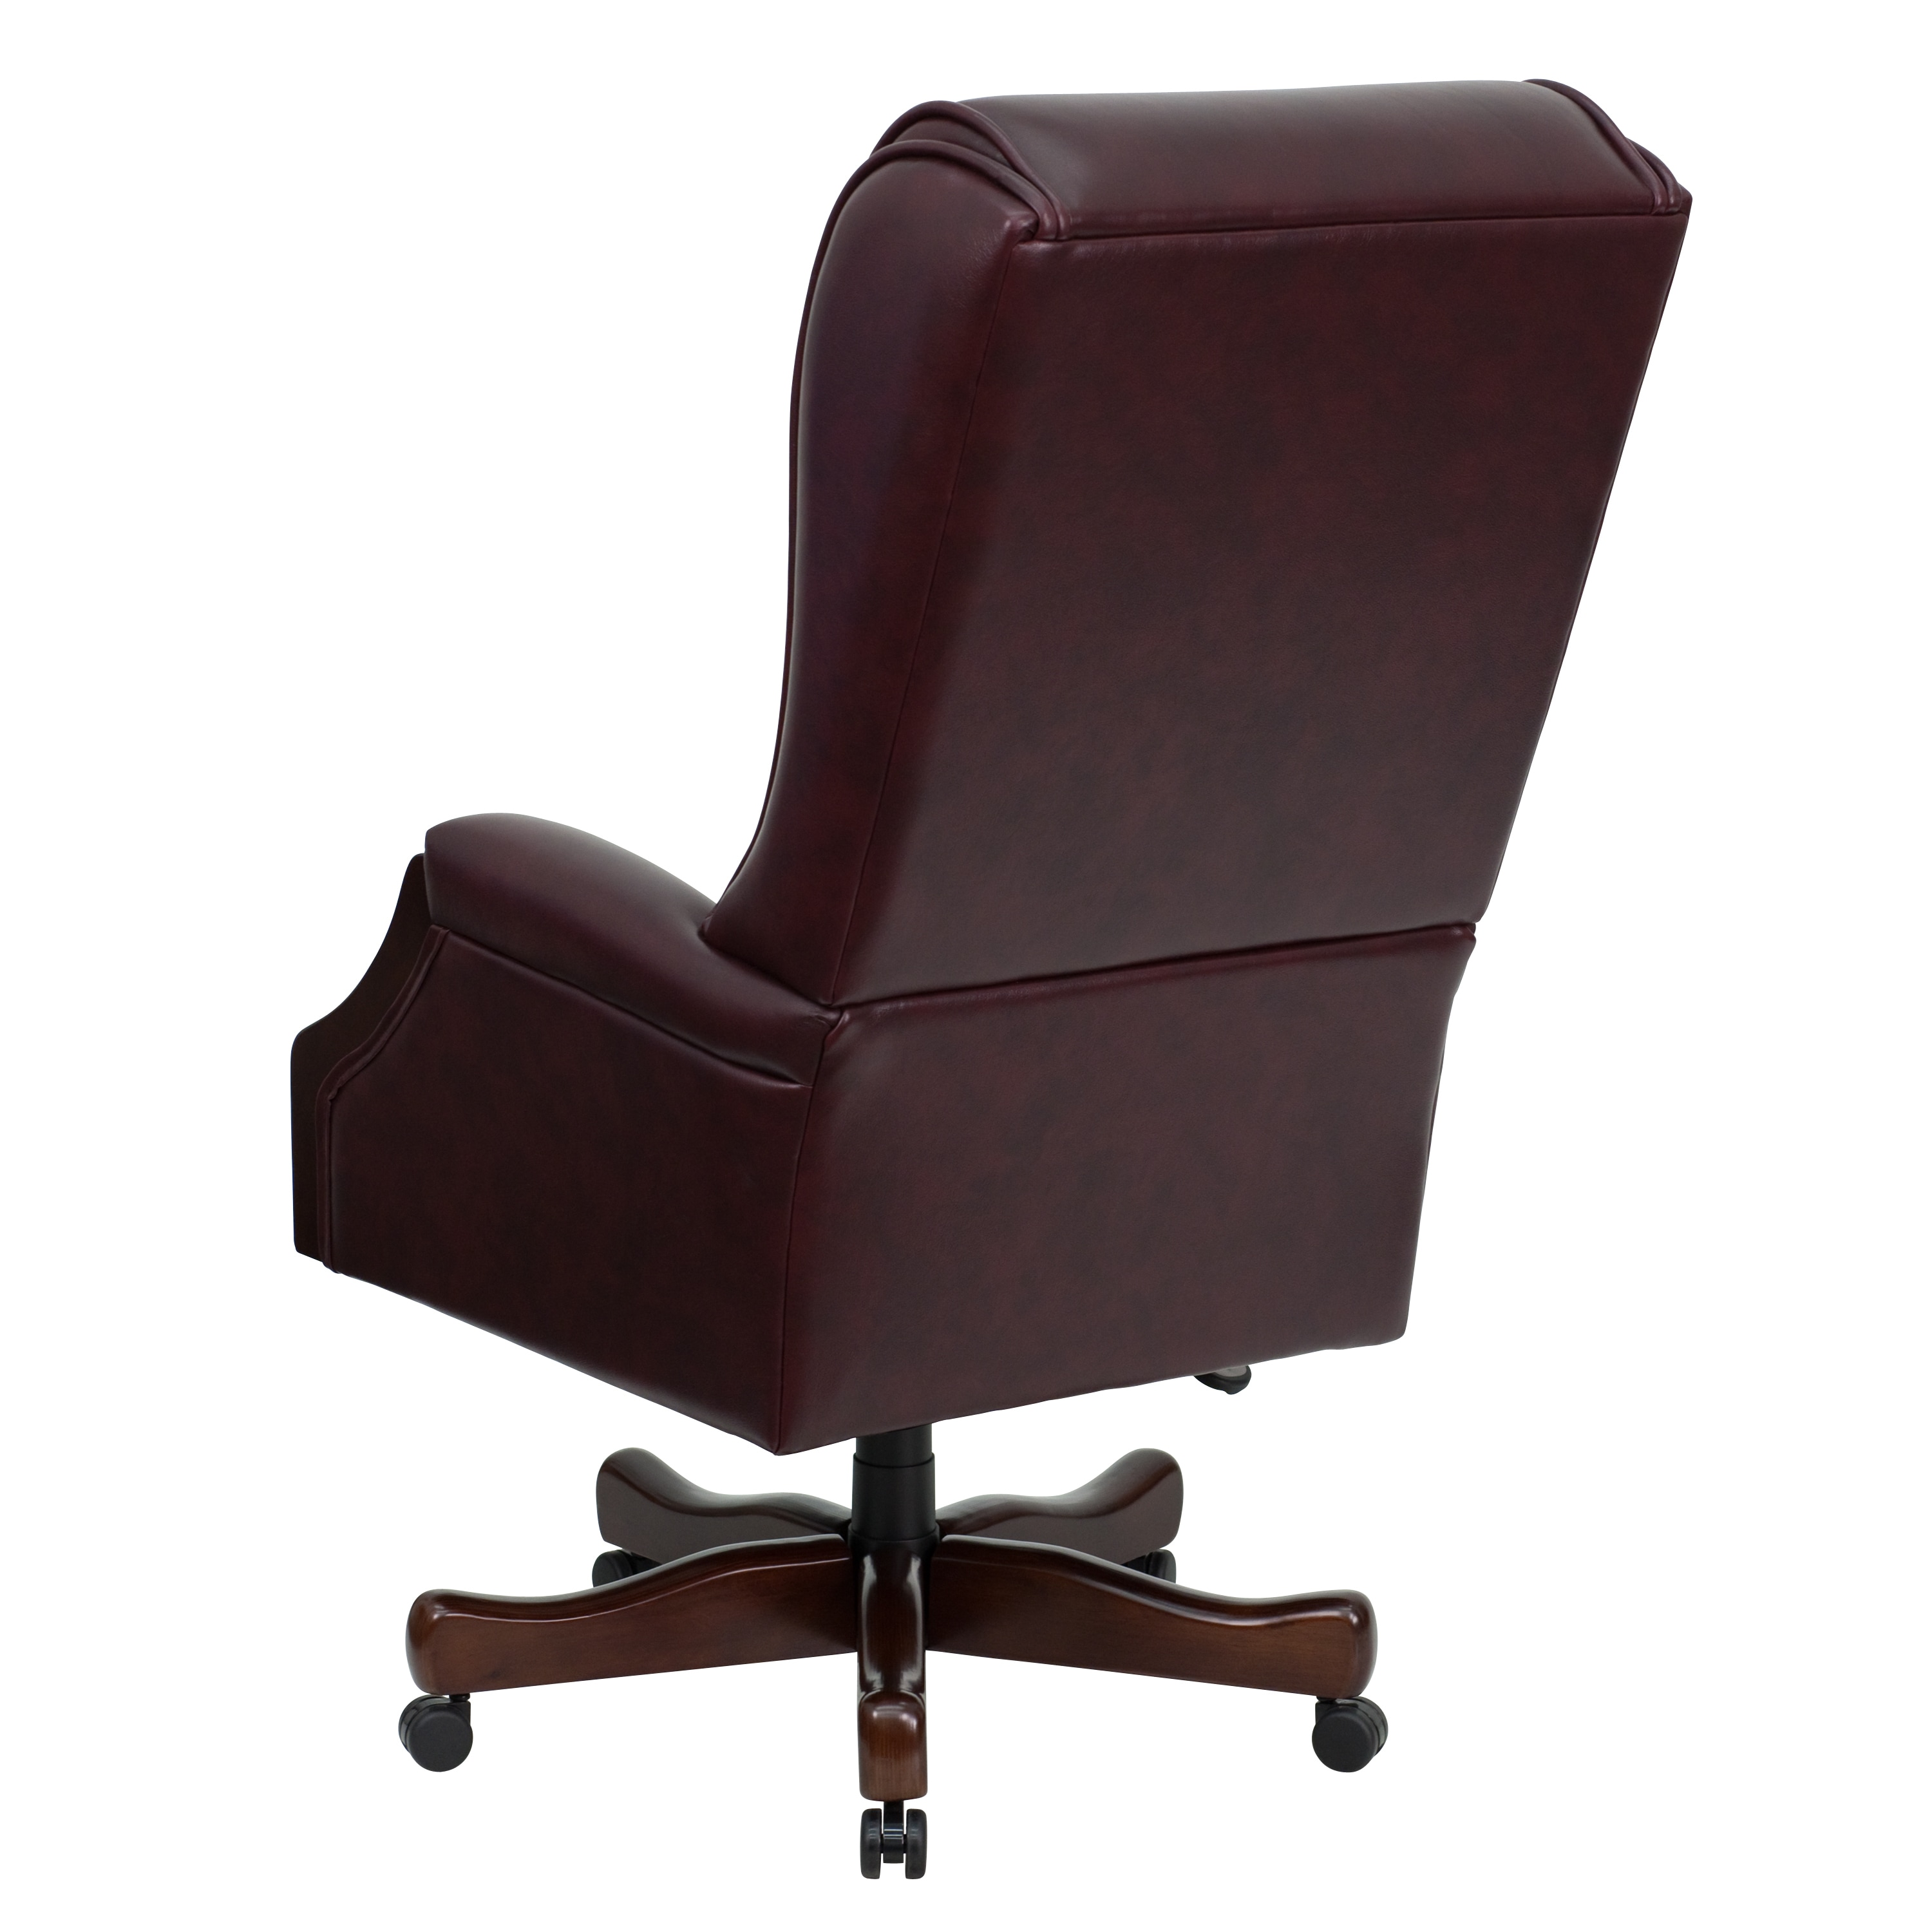 Presidential On Tufted Burgundy Leather Executive Swivel Adjule Office Chair Free Shipping Today 11482734